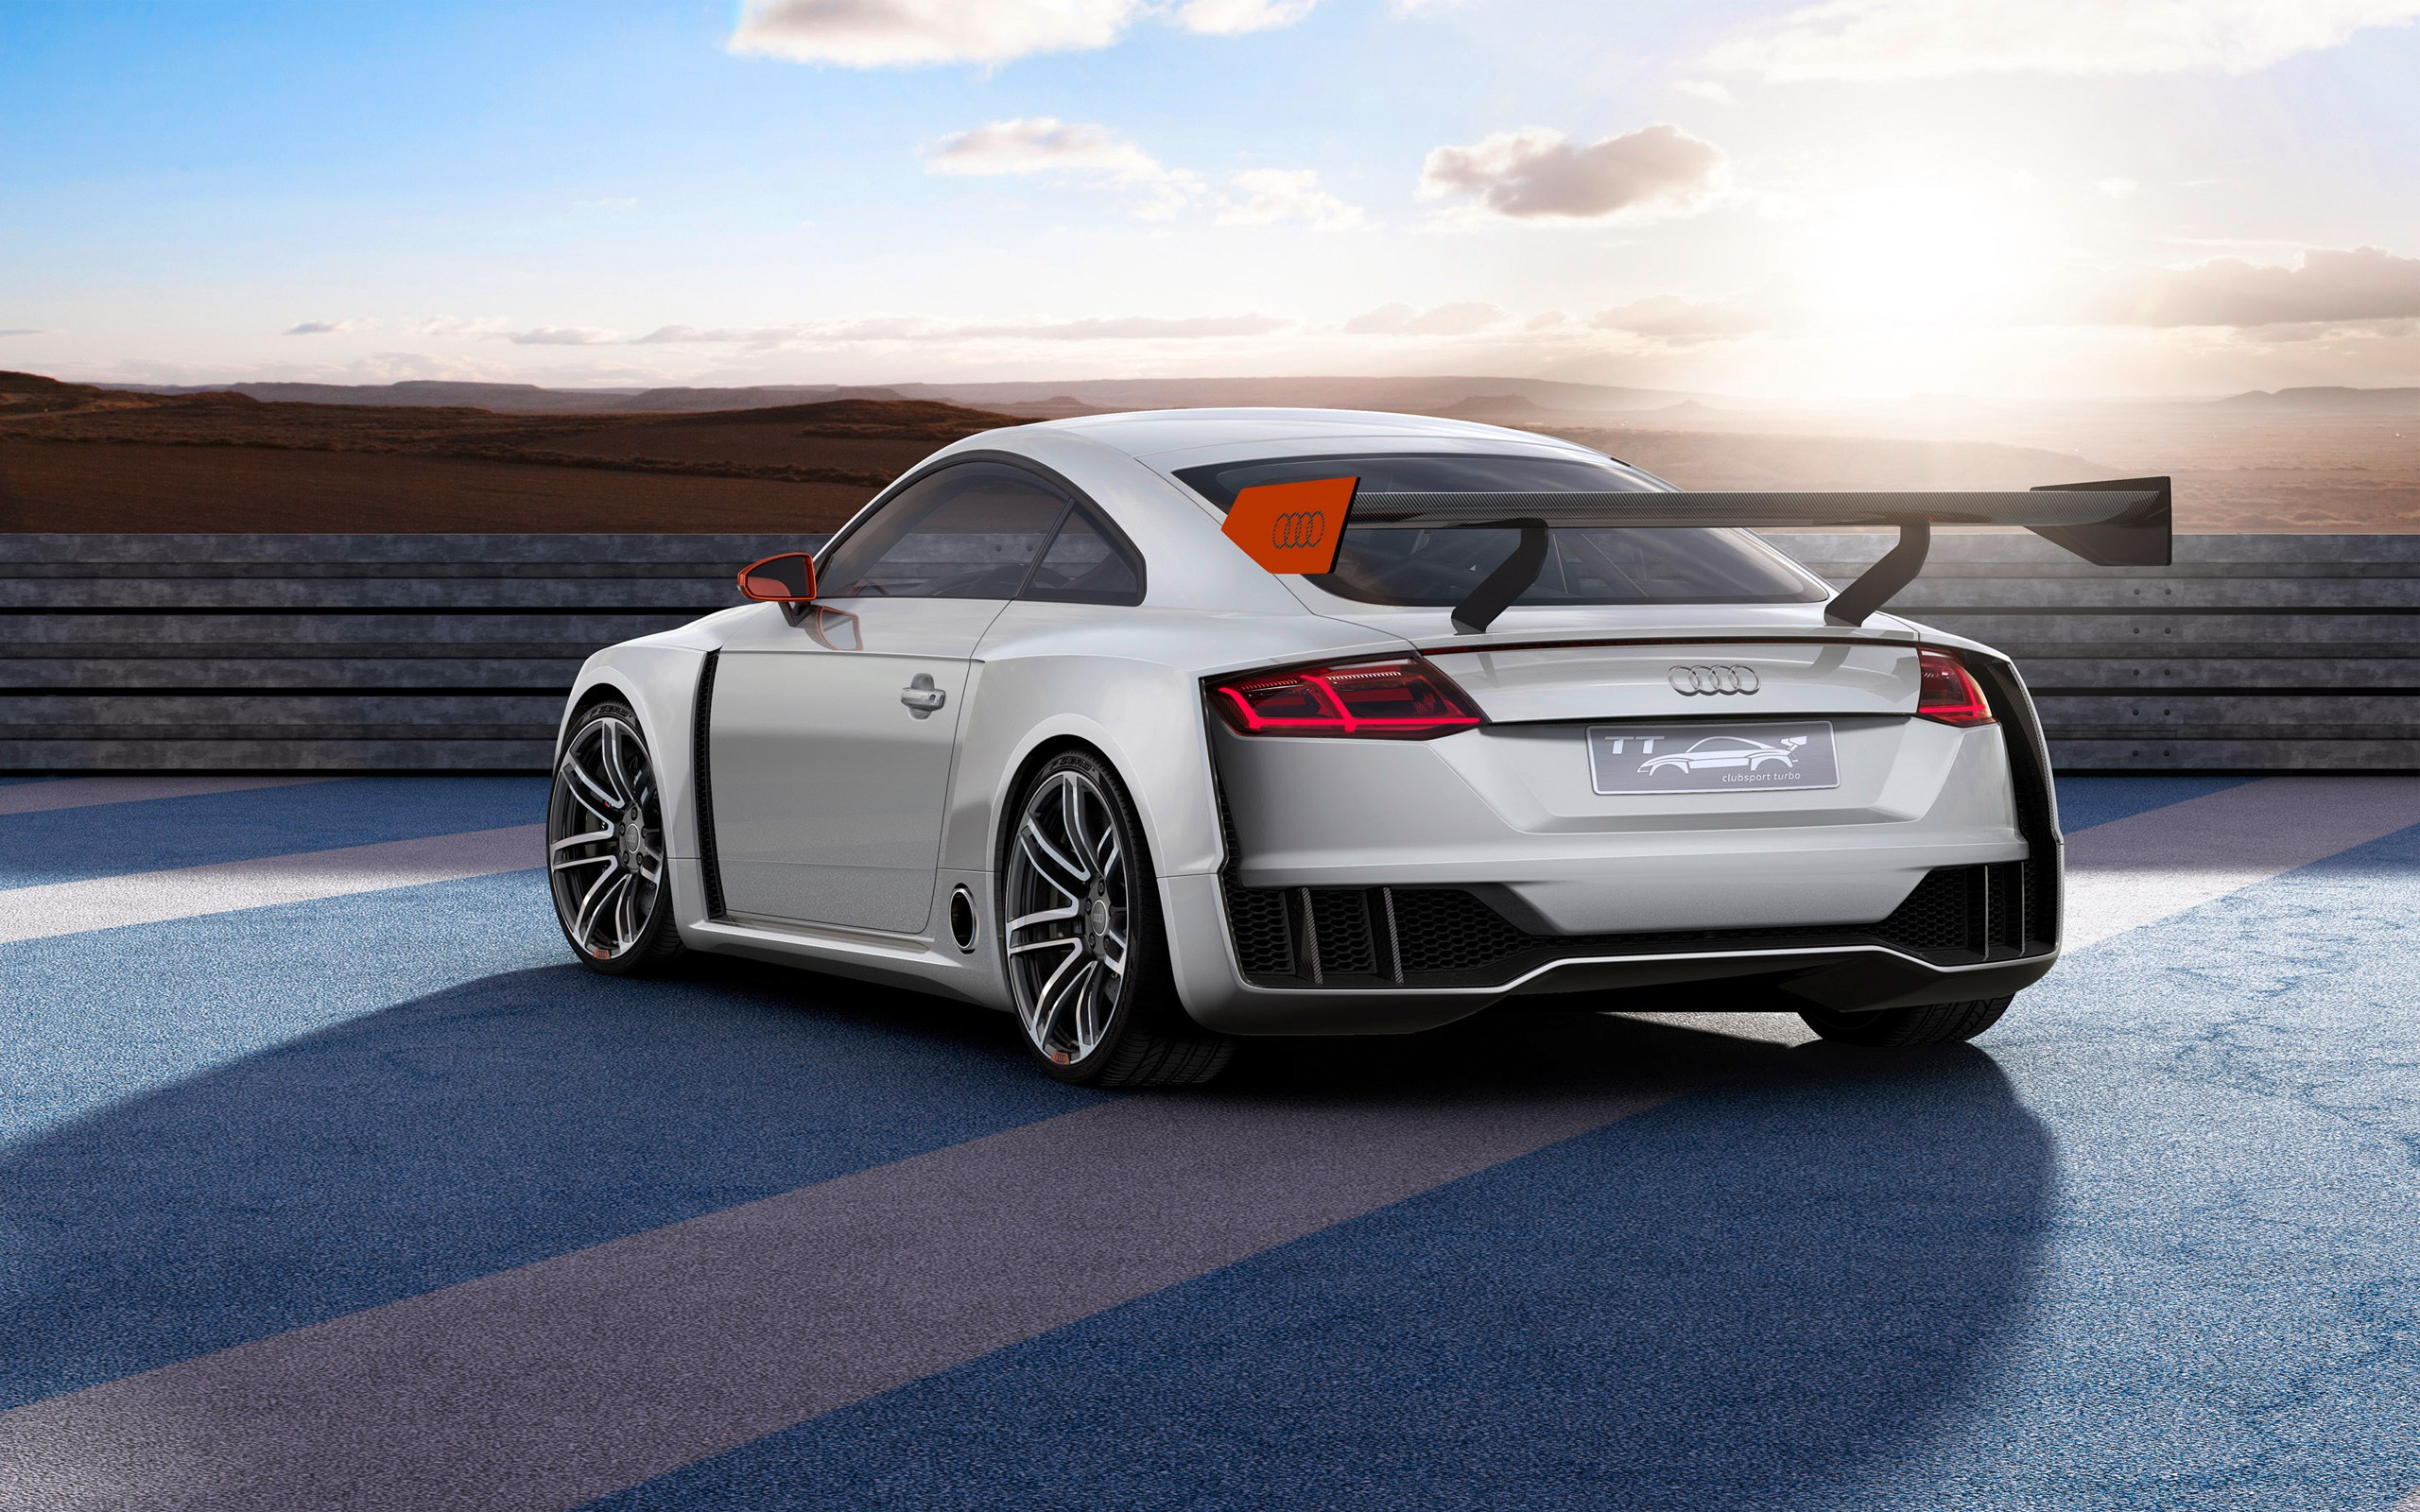 2015 Audi TT Clubsport Turbo Concept 3 Wallpaper  HD Car Wallpapers